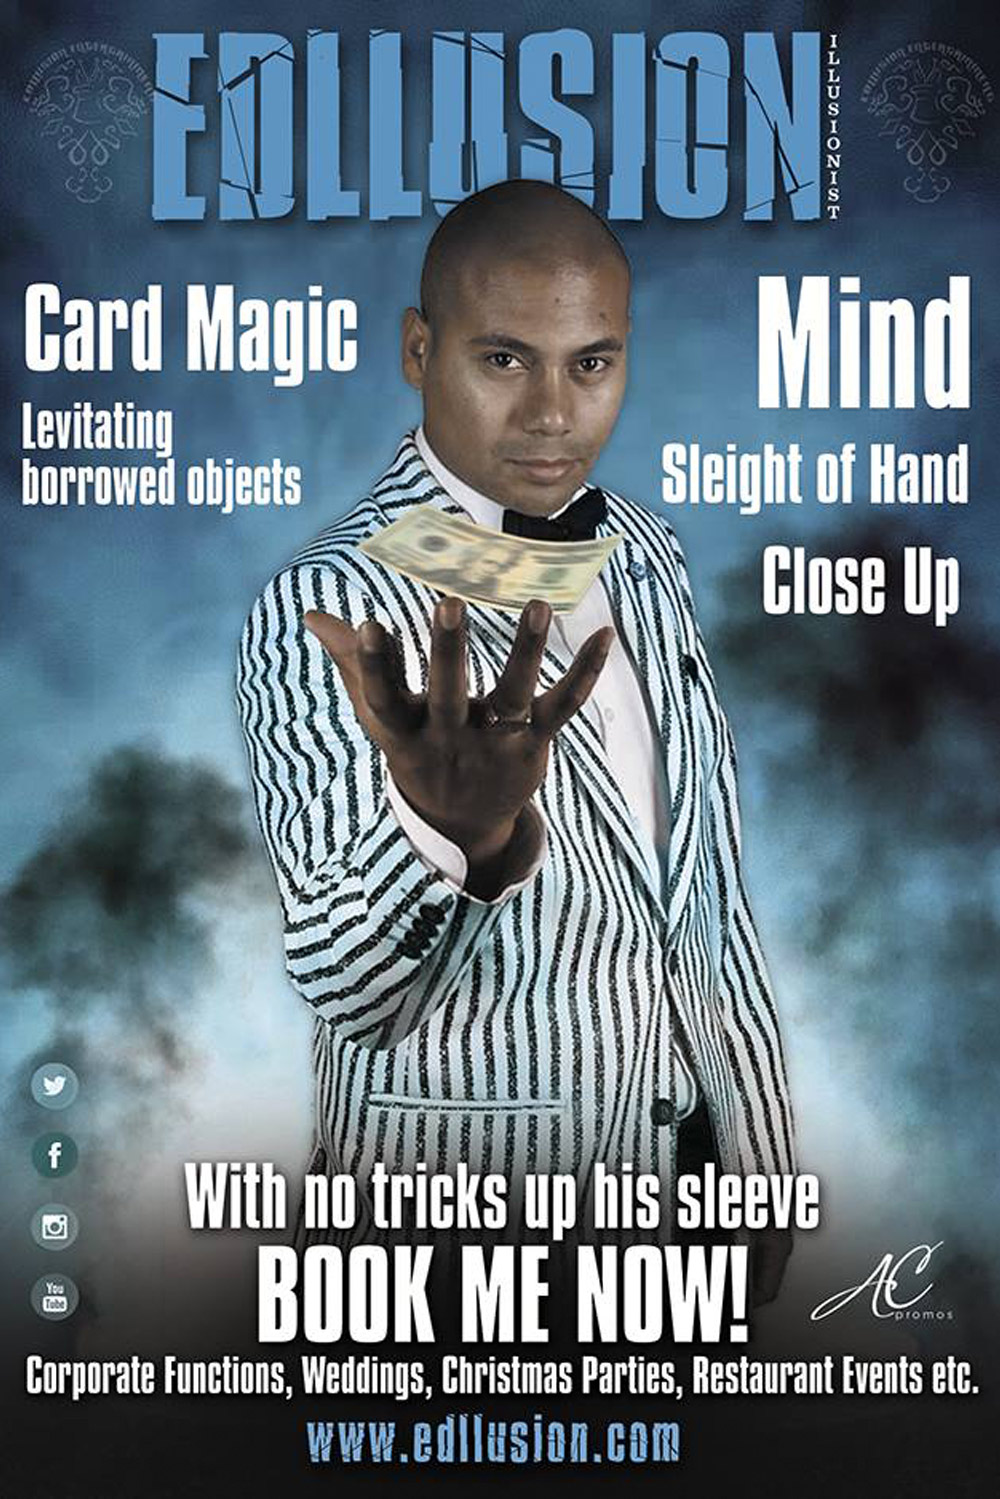 stand-up-magic-tricks-card-magic